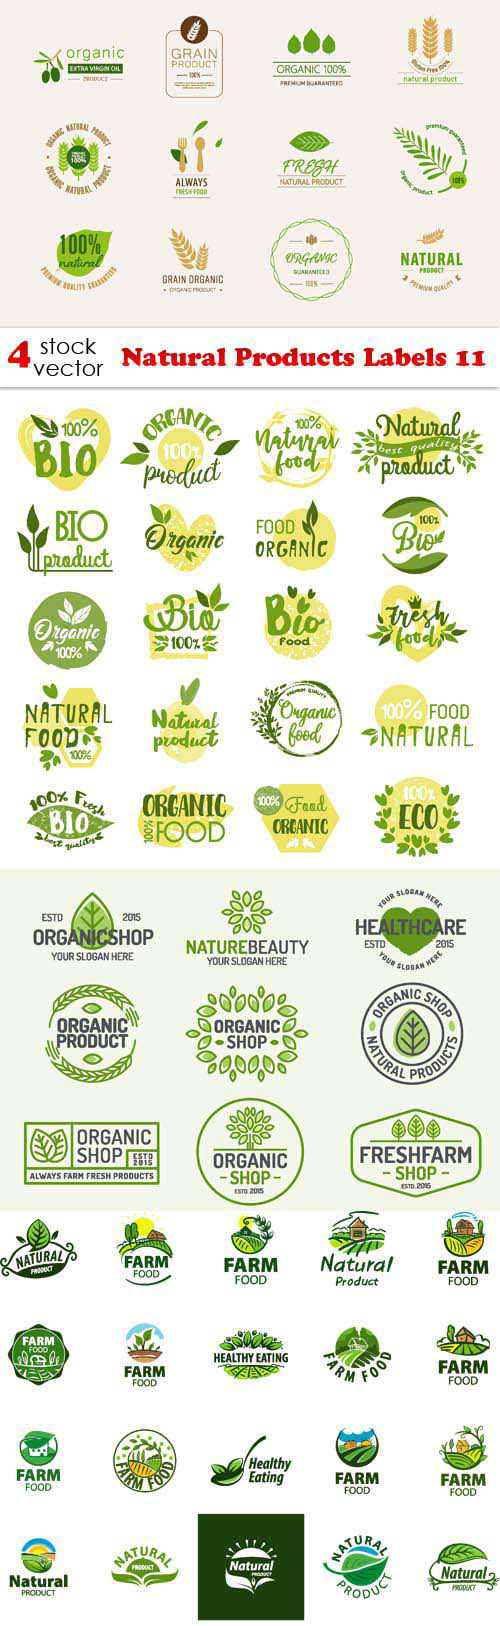 Natural Products Labels 11